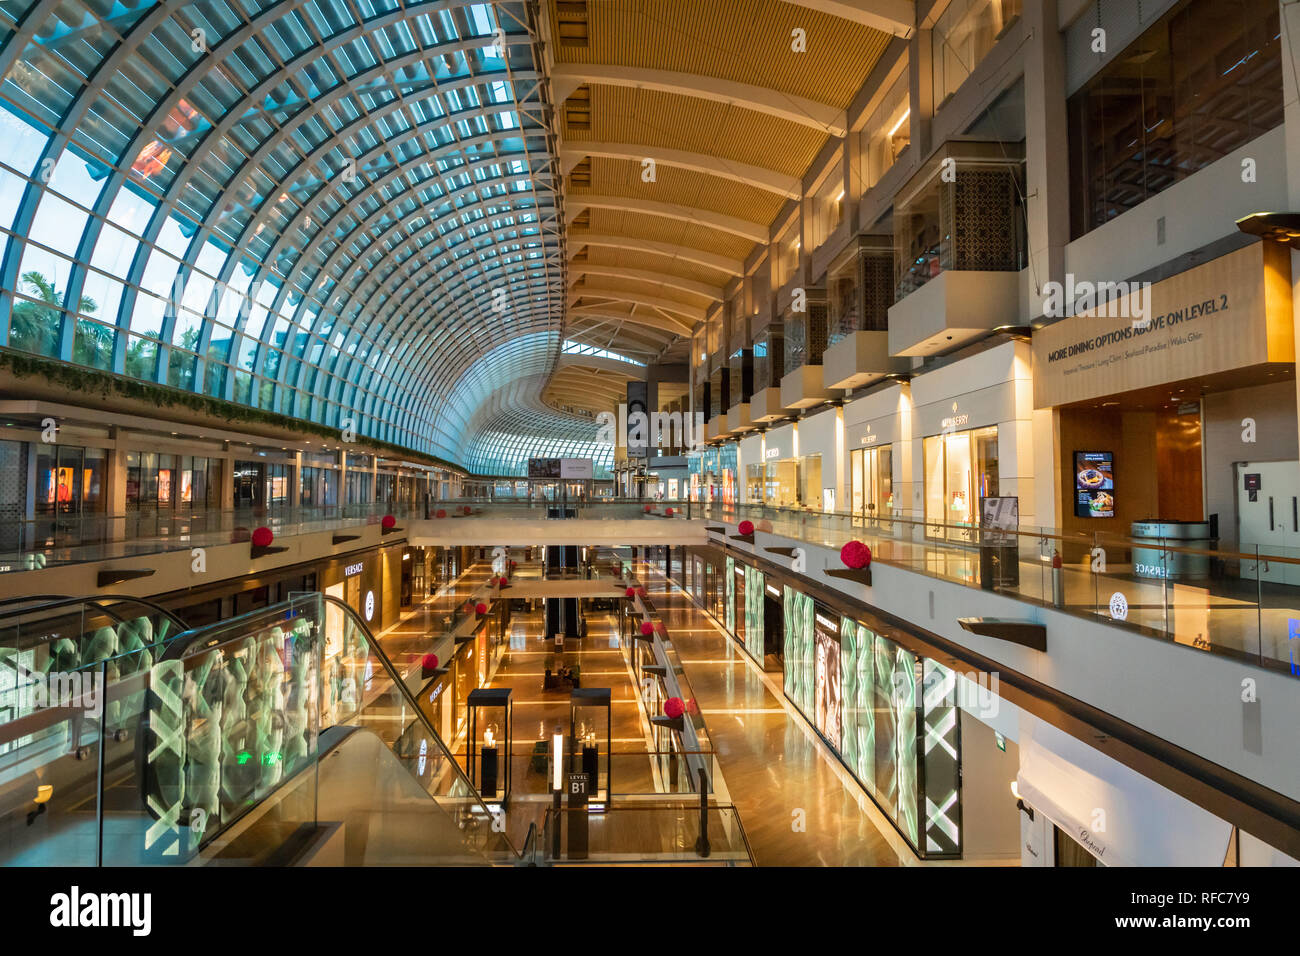 Singapore - January 2019: Marina Bay Sands shopping mall interior architecture. Marina Bay Sands is an integrated resort fronting Marina Bay in Singap - Stock Image